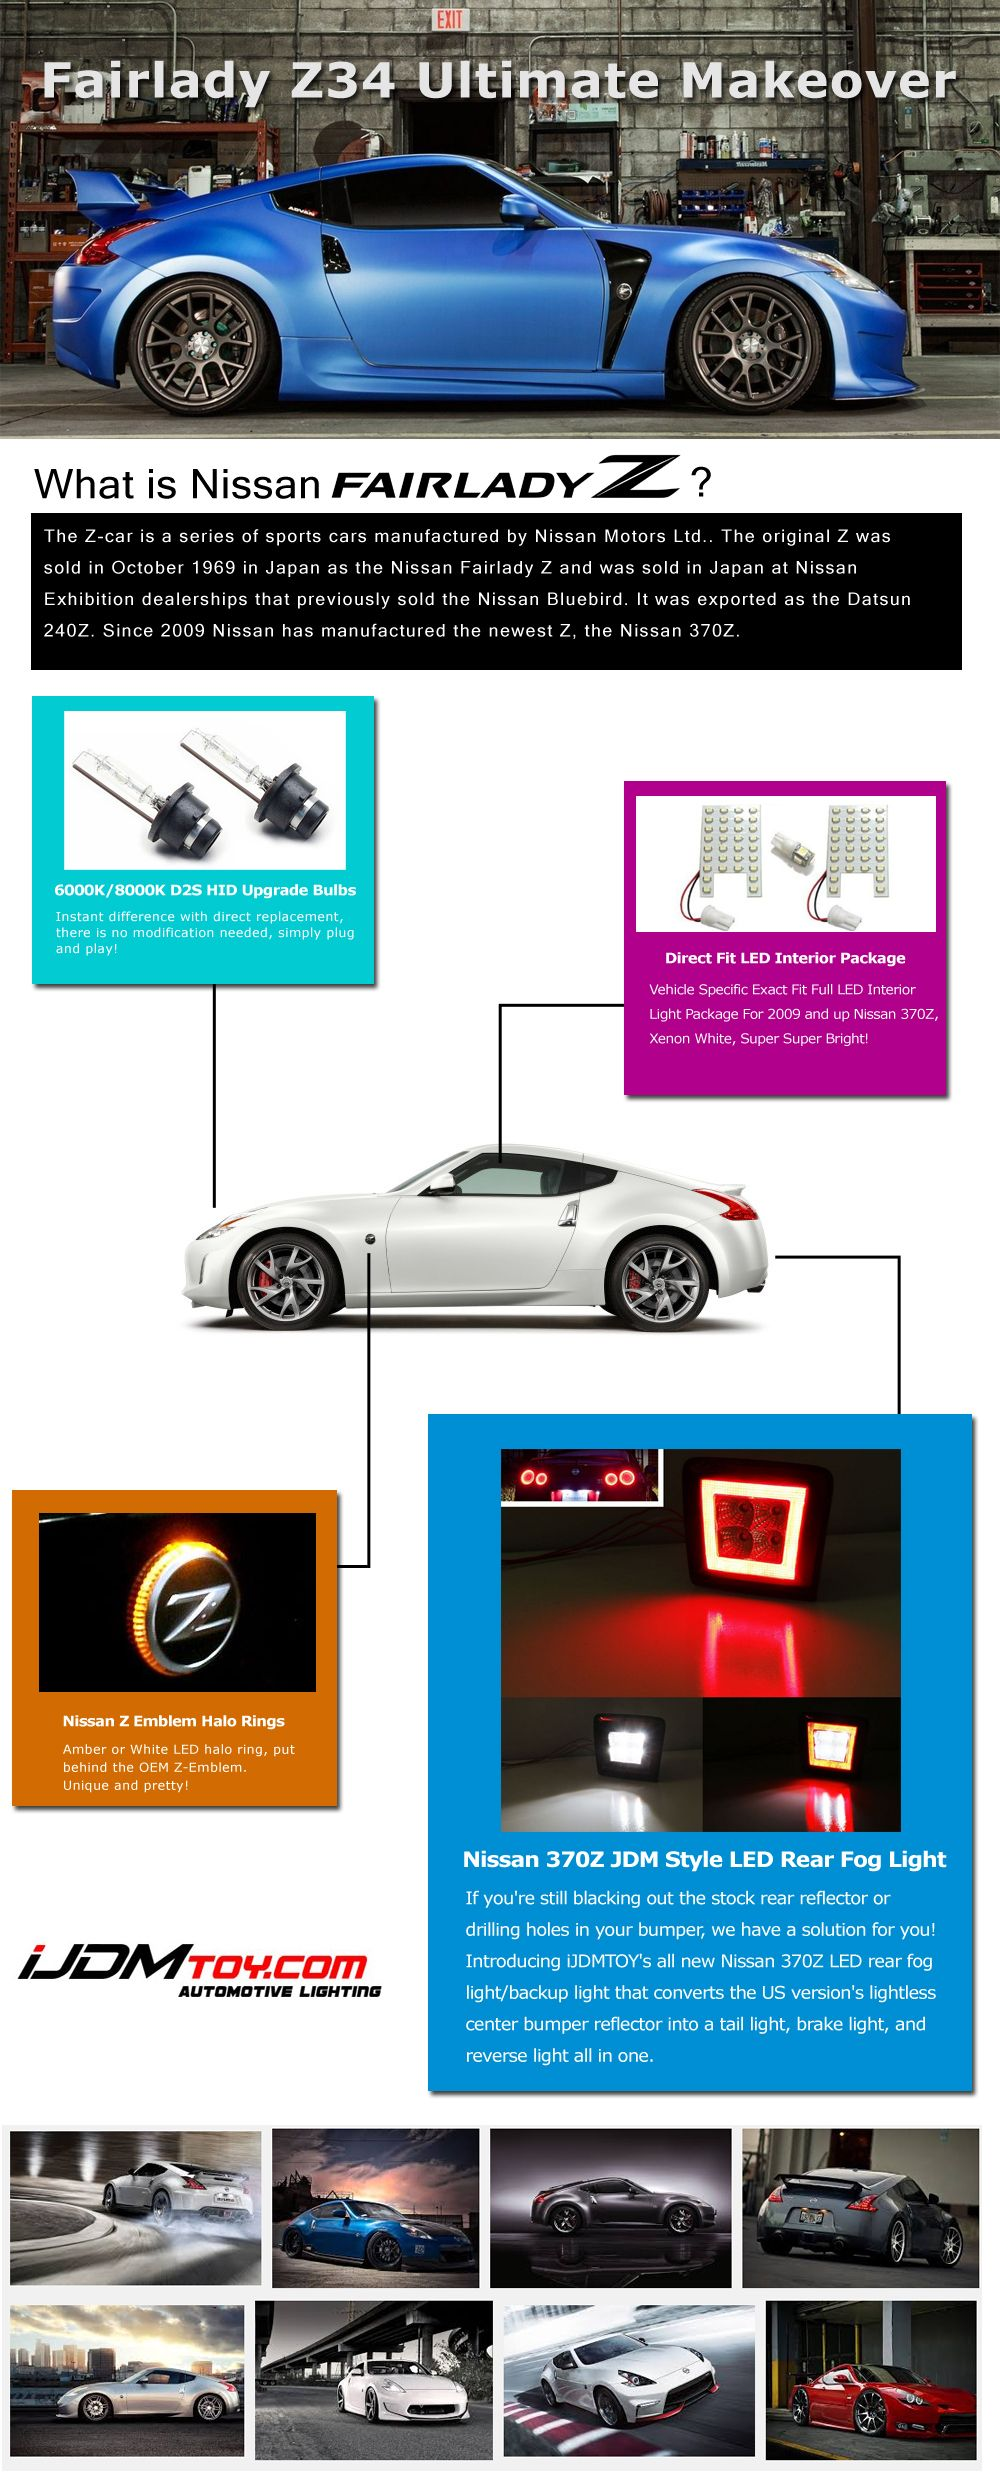 The Ultimate Modification Guide For Your Nissan Fairlady Z34 370z 1 Hid Headlight Bulbs 2 Led Interior Package 3 Z Em Nissan Nissan 370z Nissan Accessories